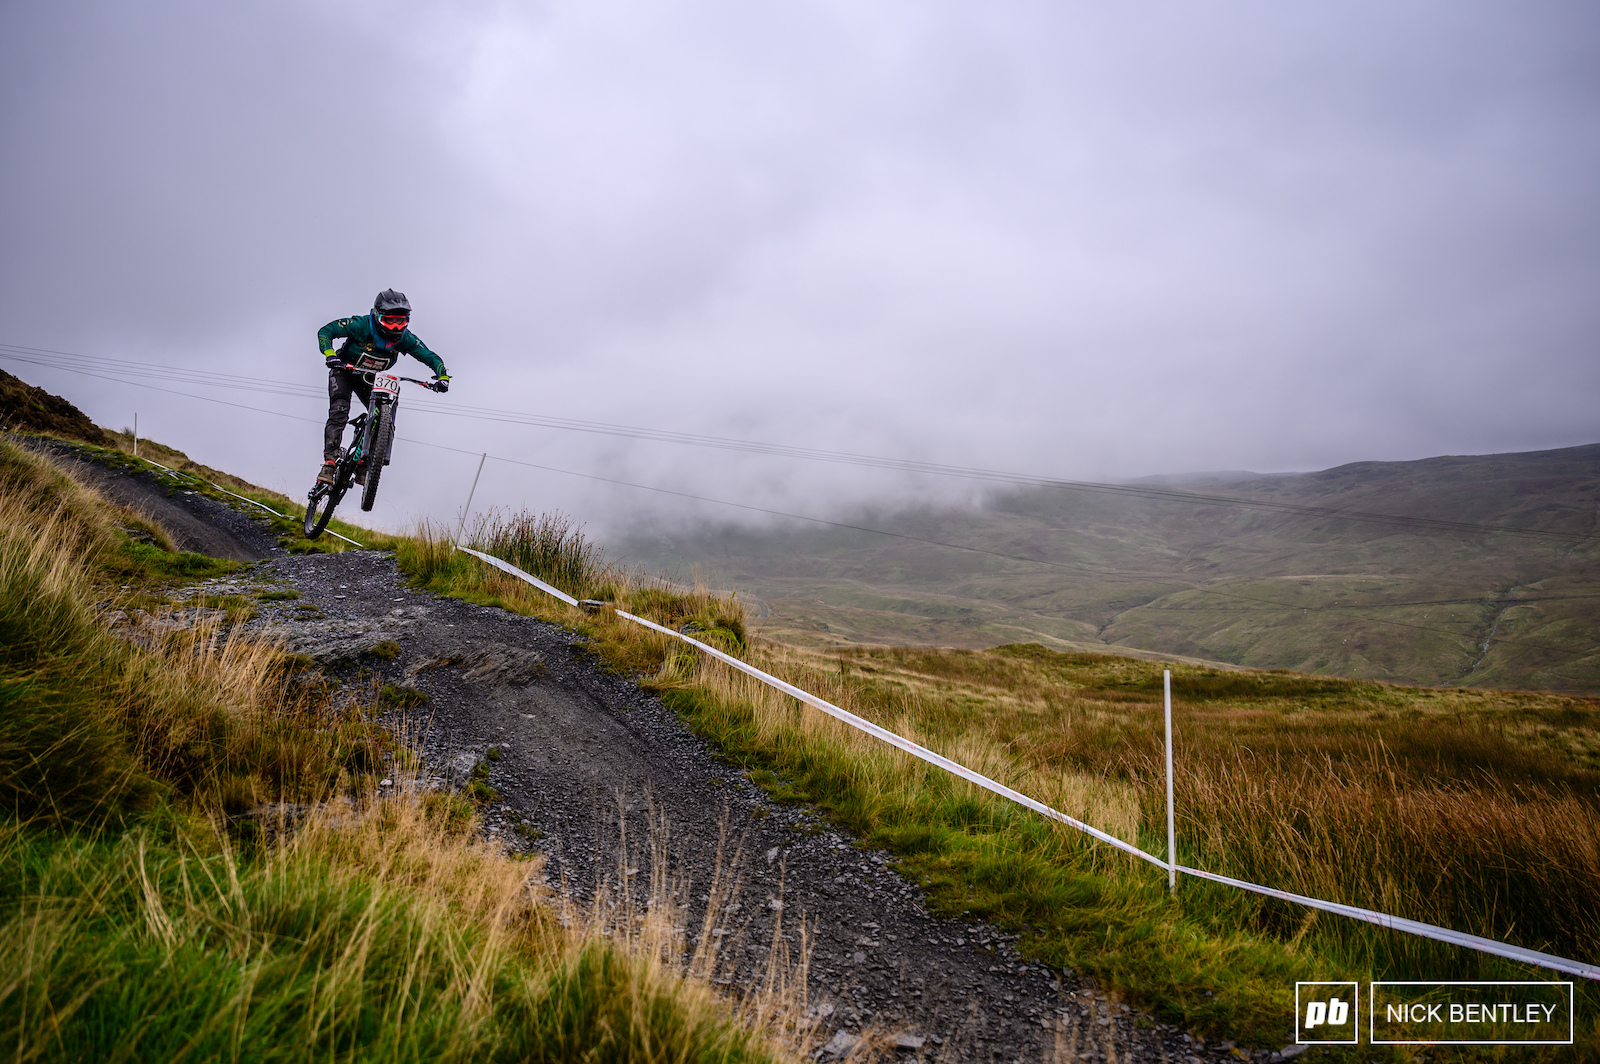 Plenty of riders choosing to press send on the various drops littering the Antur Stiniog track